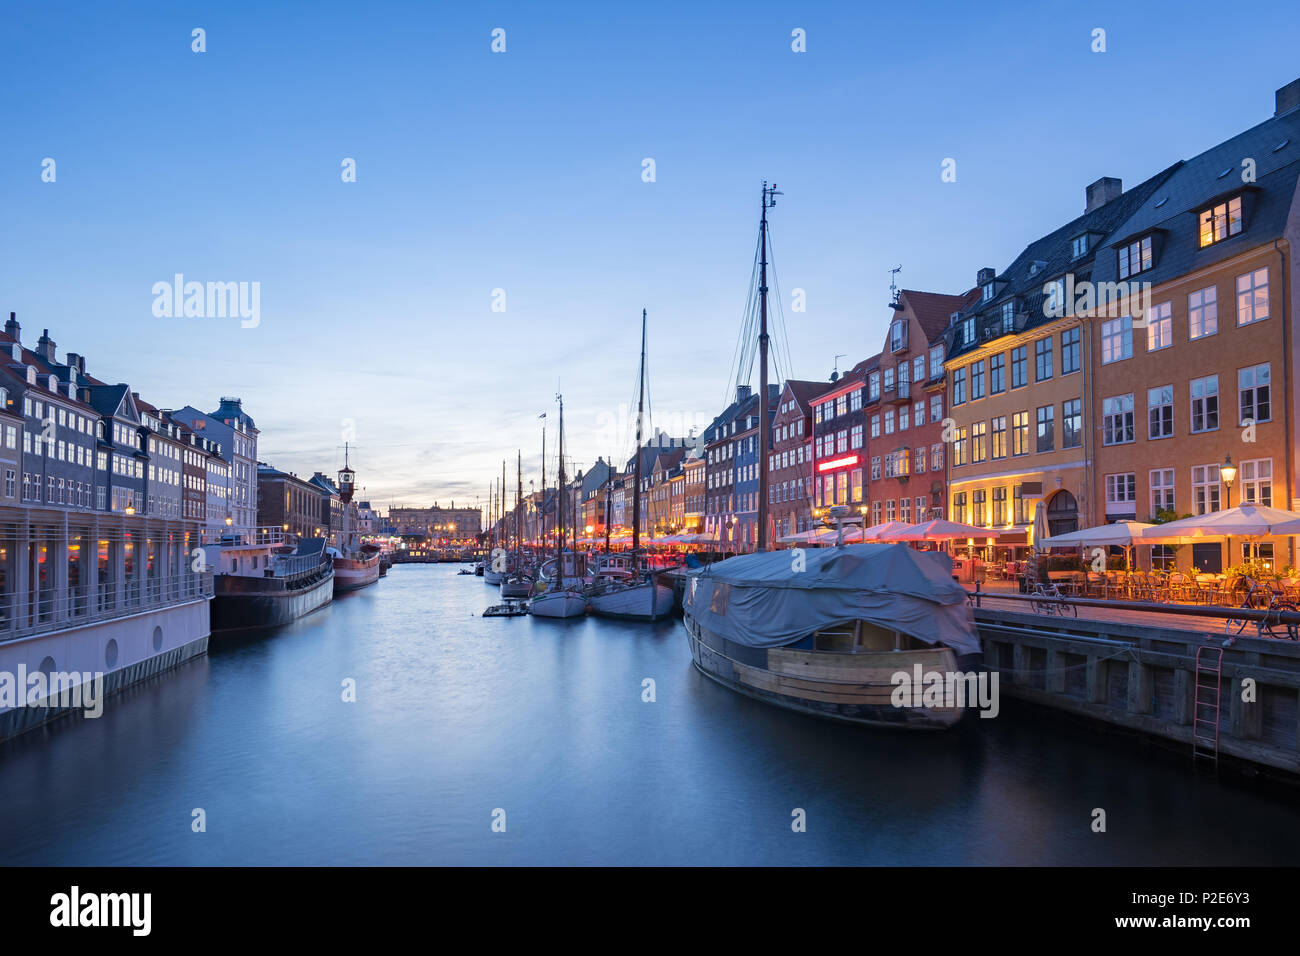 Nyhavn with the canal at night in Copenhagen city, Denmark. - Stock Image